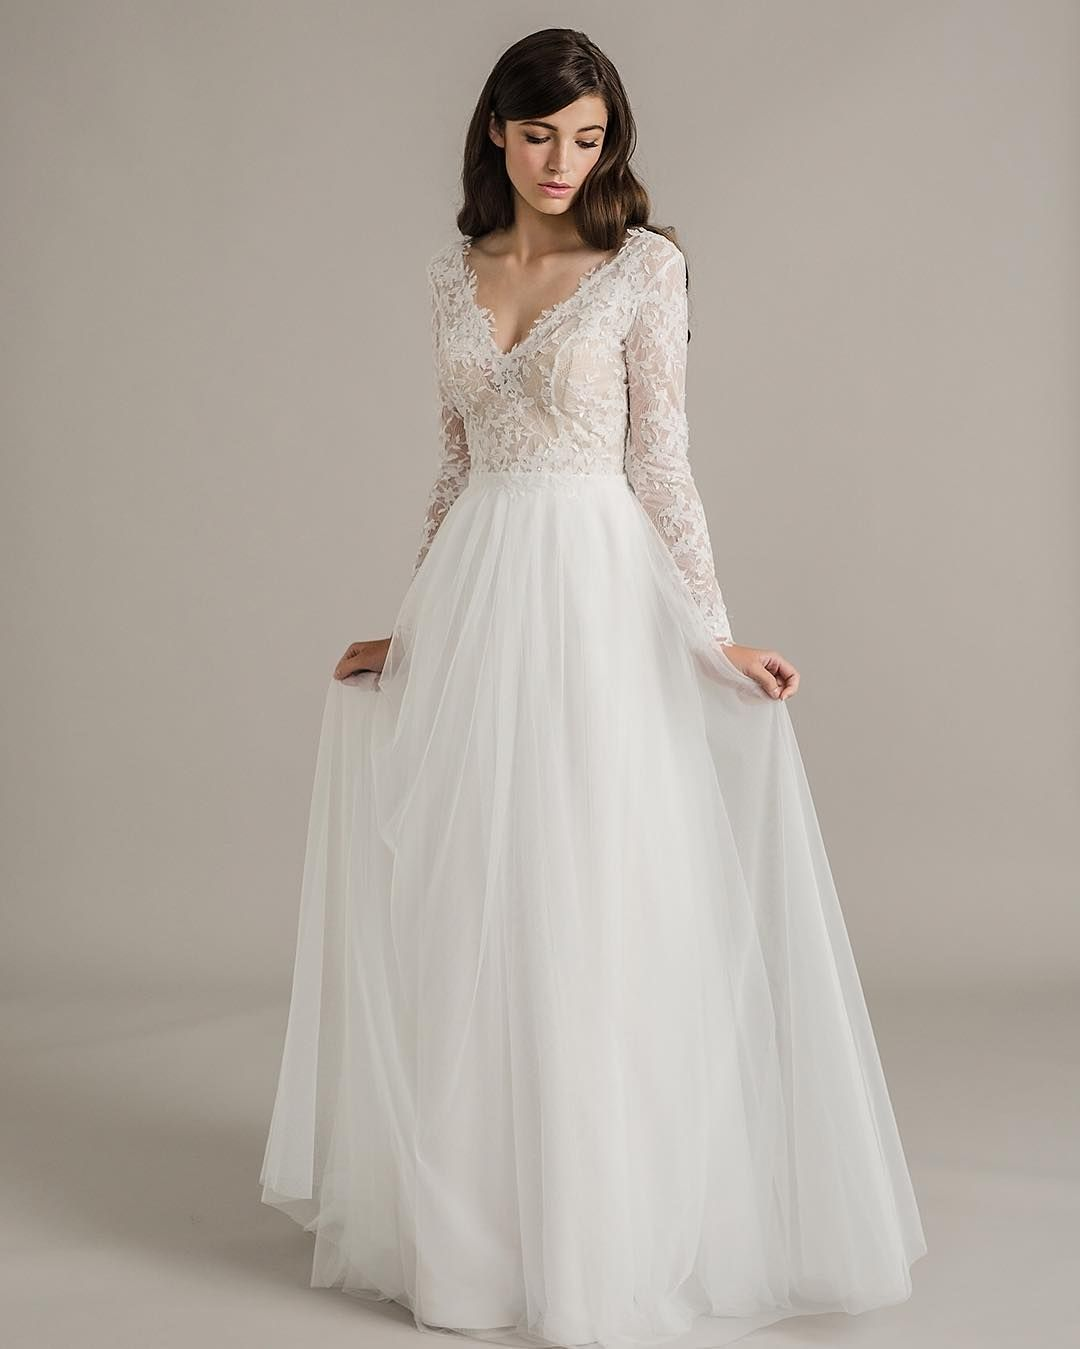 Long sleeved, low neck, waisted, wedding gown by @sally_eagle_bridal ...